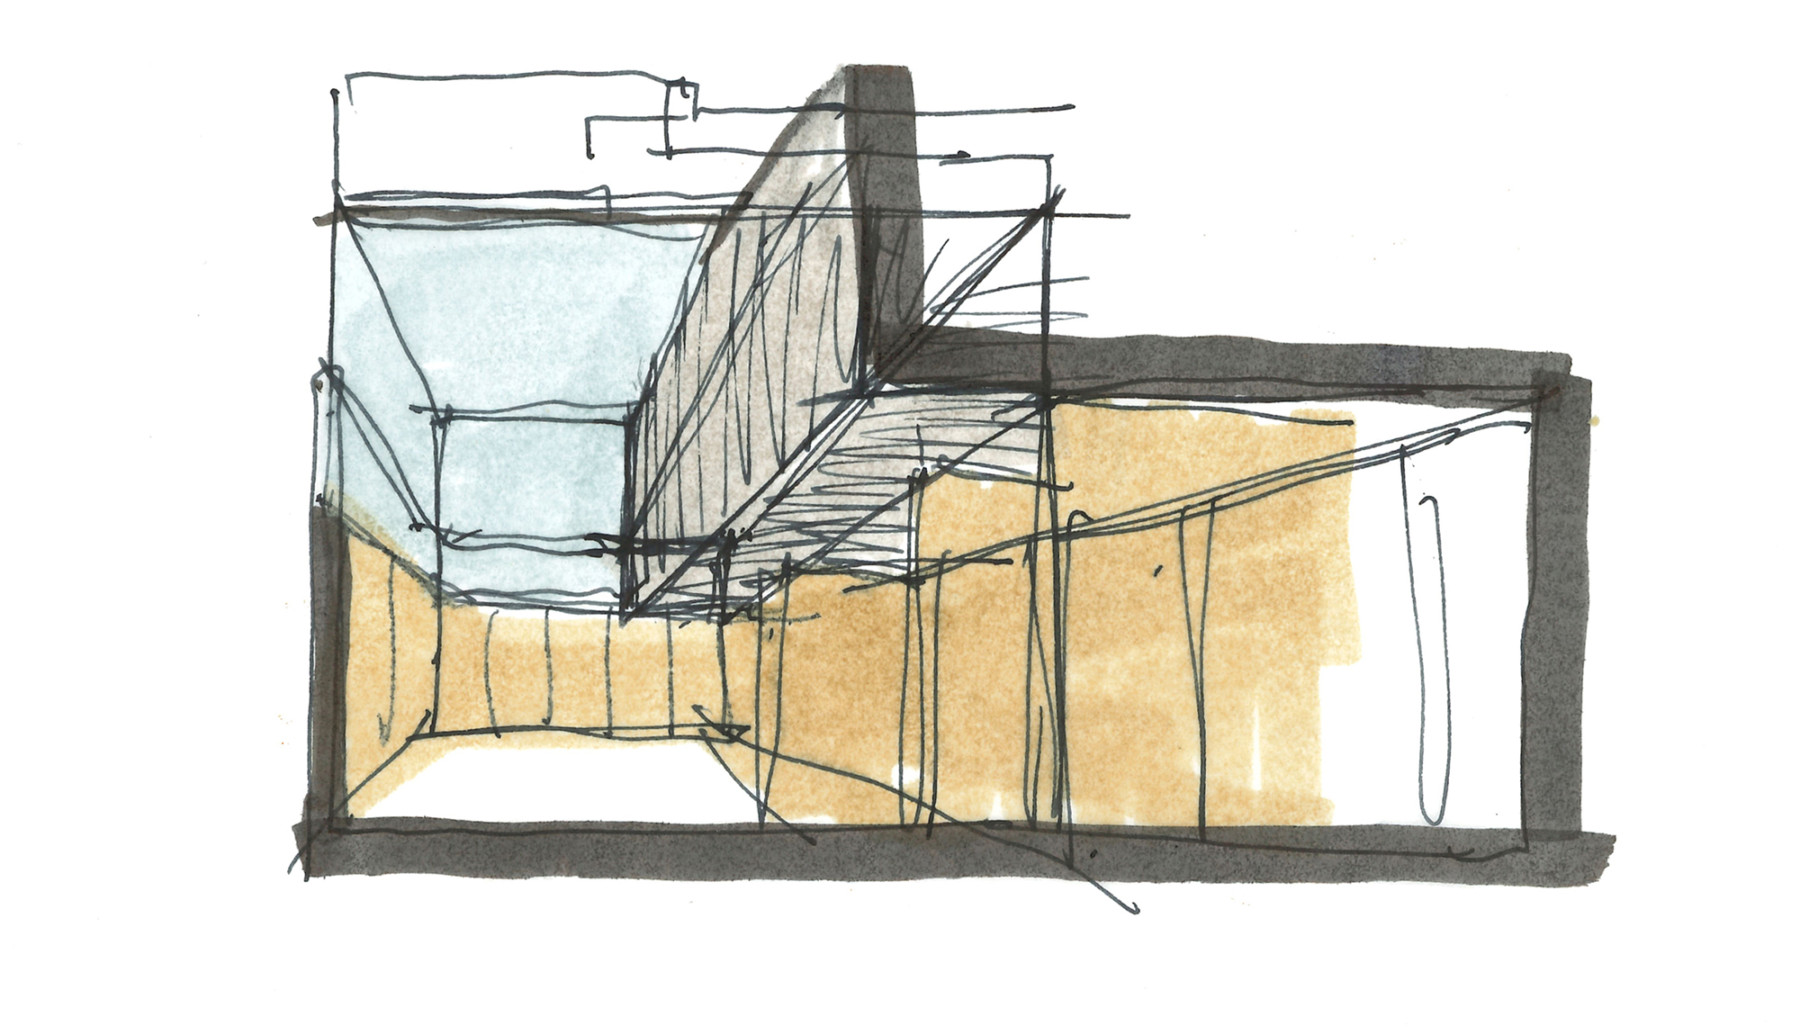 Kettle's-Yard-Cambridge-University-Art-gallery-education-redevelopment-Jim-Ede-Jamie-Fobert-Architects-sketch-double-height